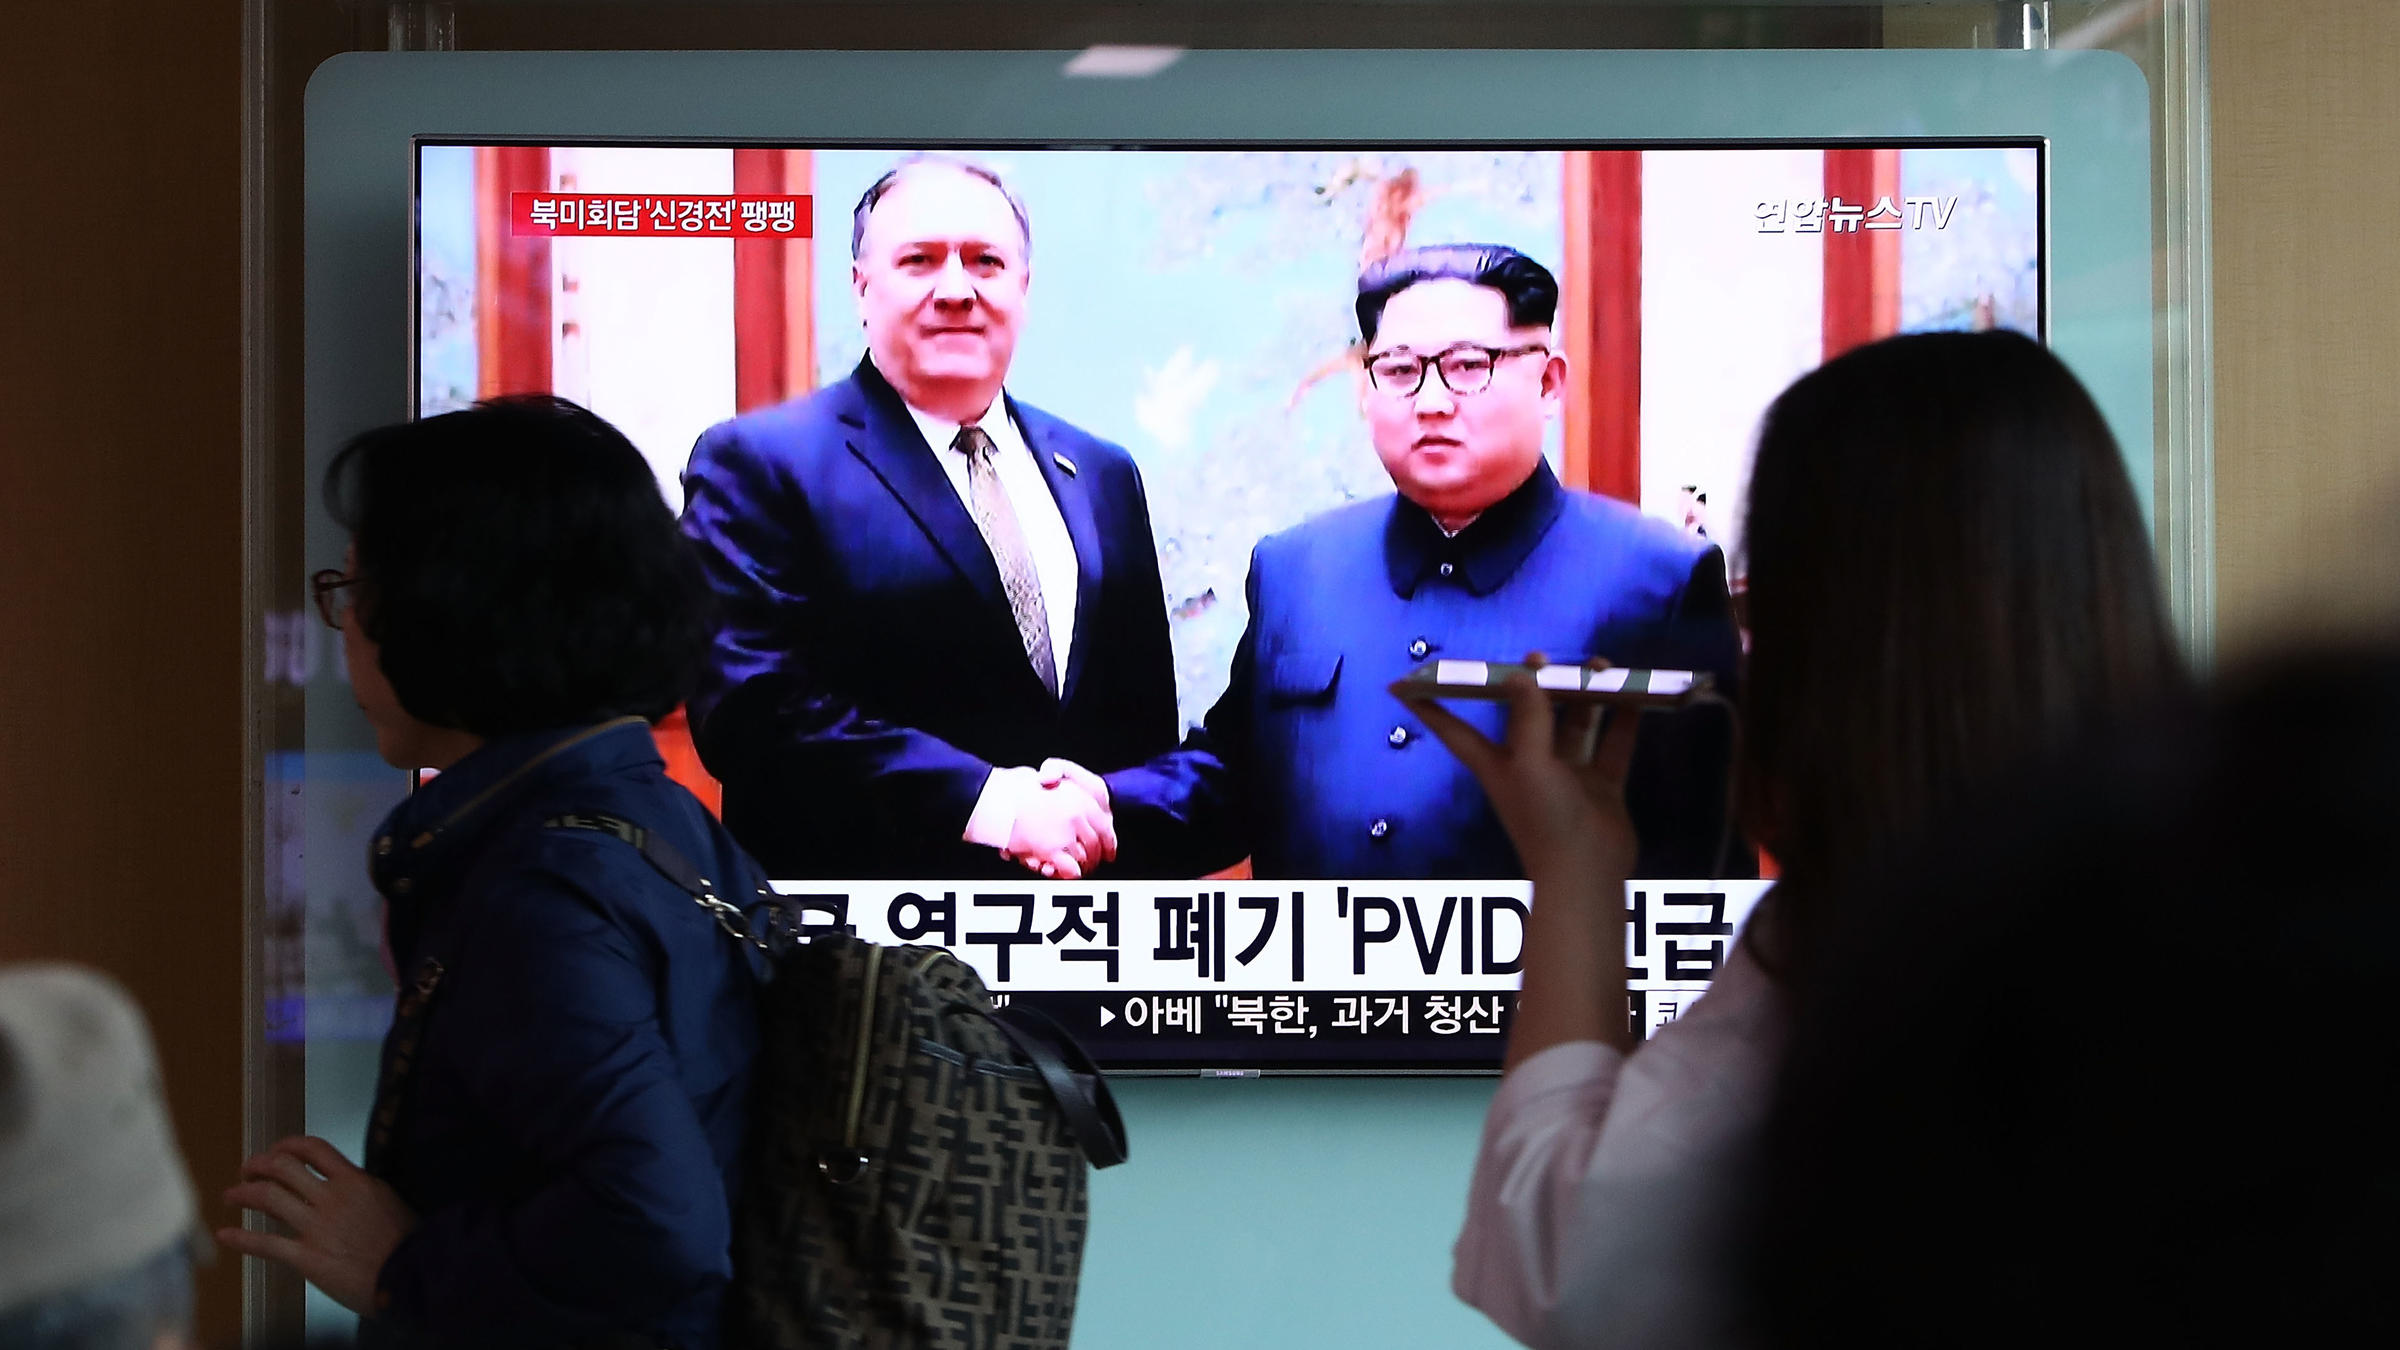 Pompeo in North Korea to help arrange summit